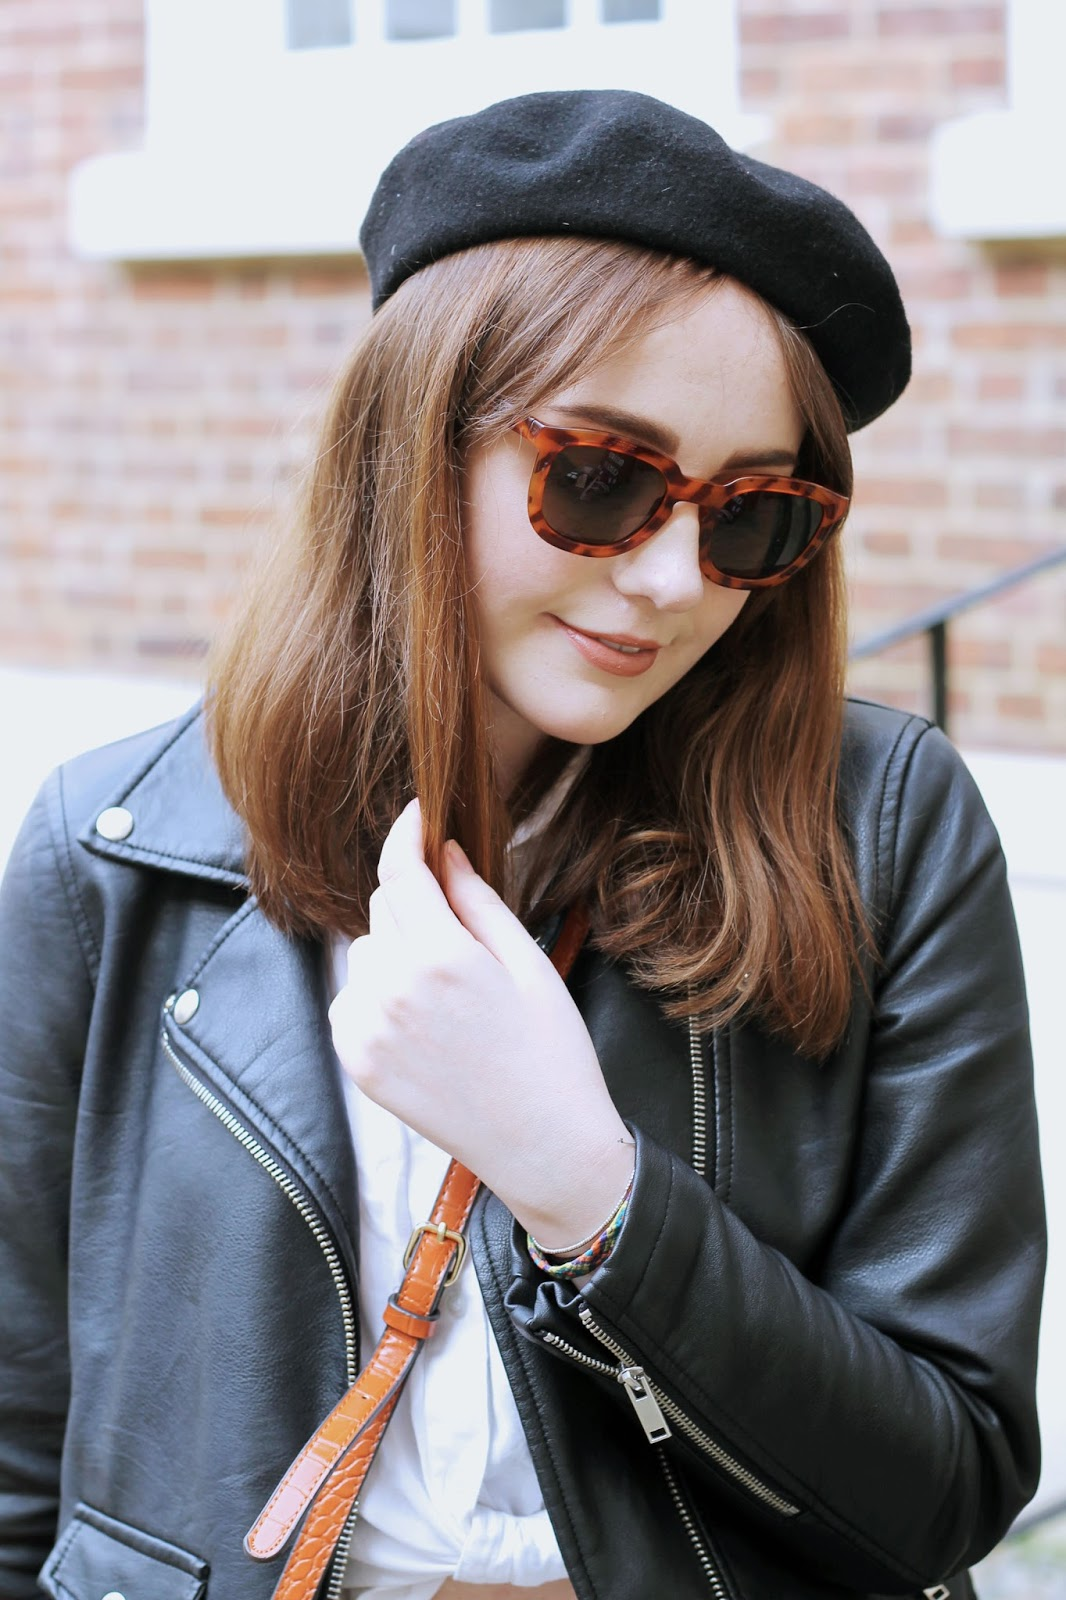 beret and sunglasses style inspiration